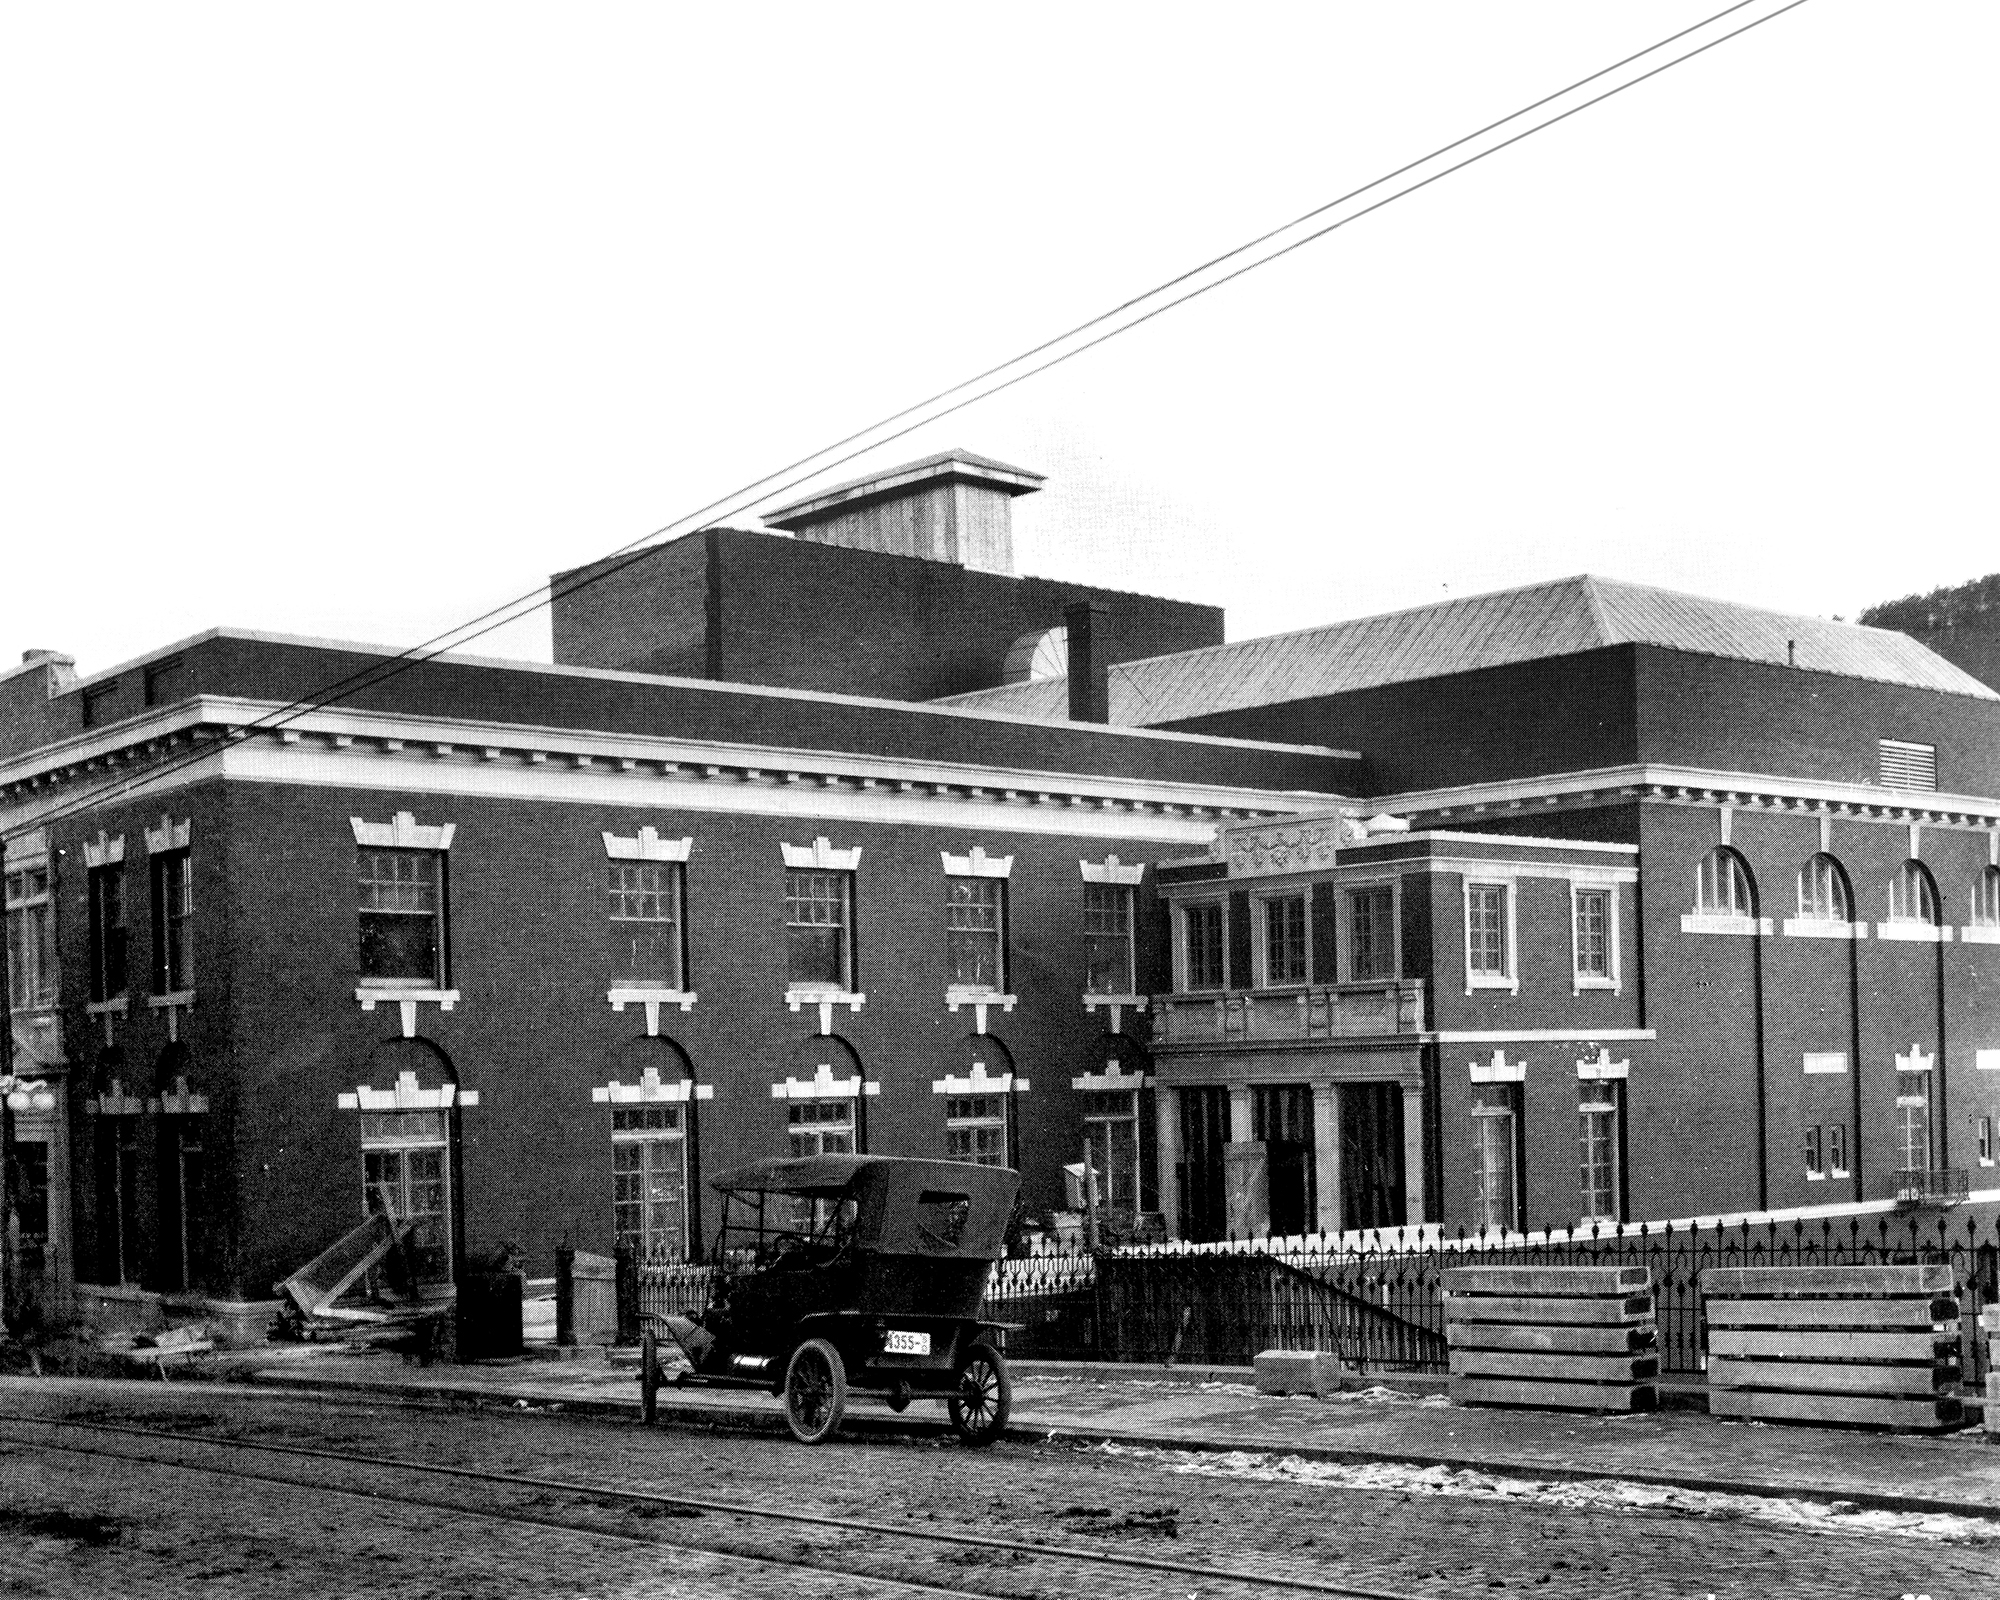 Image - hhoh_old_building_exterior_1913_small.jpg